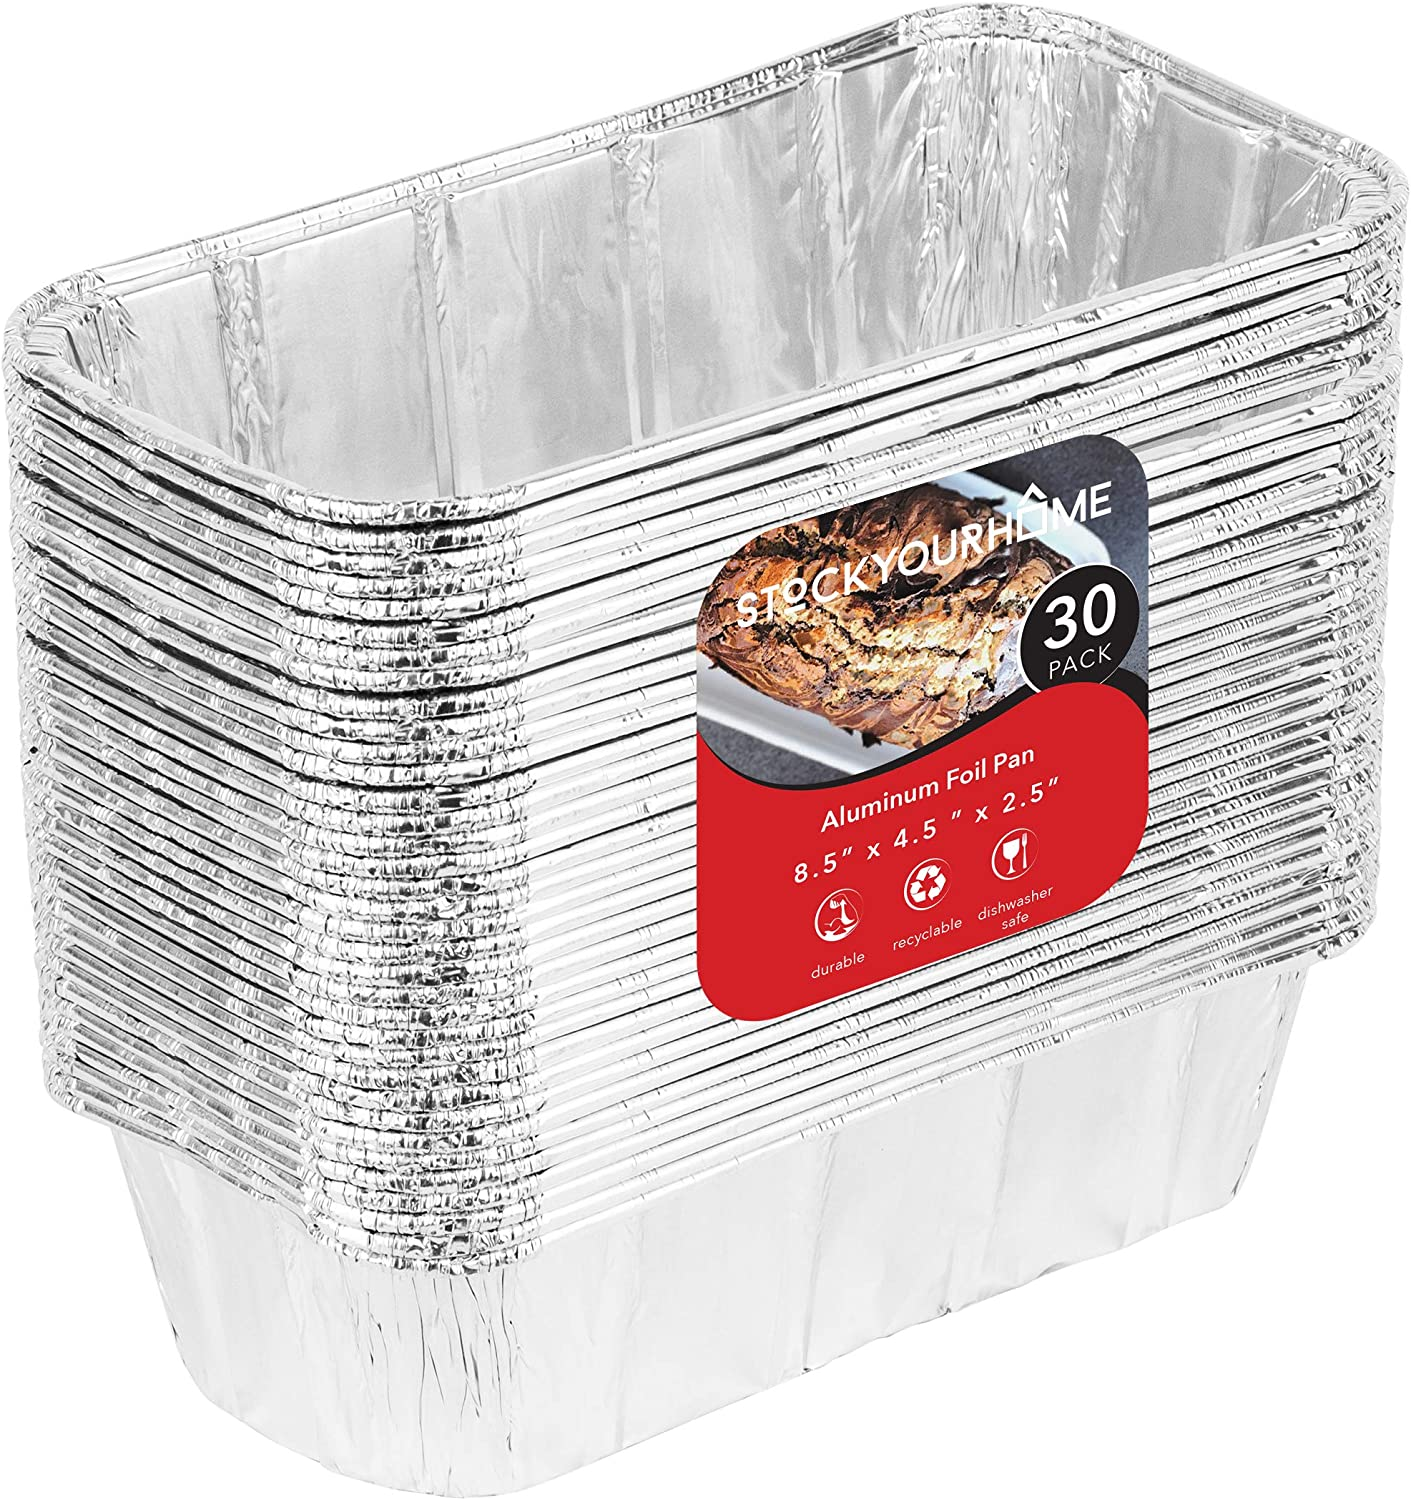 Aluminum Pans Bread Loaf Pans (30 Pack) 8x4 Aluminum Loaf Pan - 2 Lb Bread Tins, Standard Size, Compatible with Roadpro 12 Volt Portable Stove - Perfect for Baking Cakes, Bread, Meatloaf, Lasagna